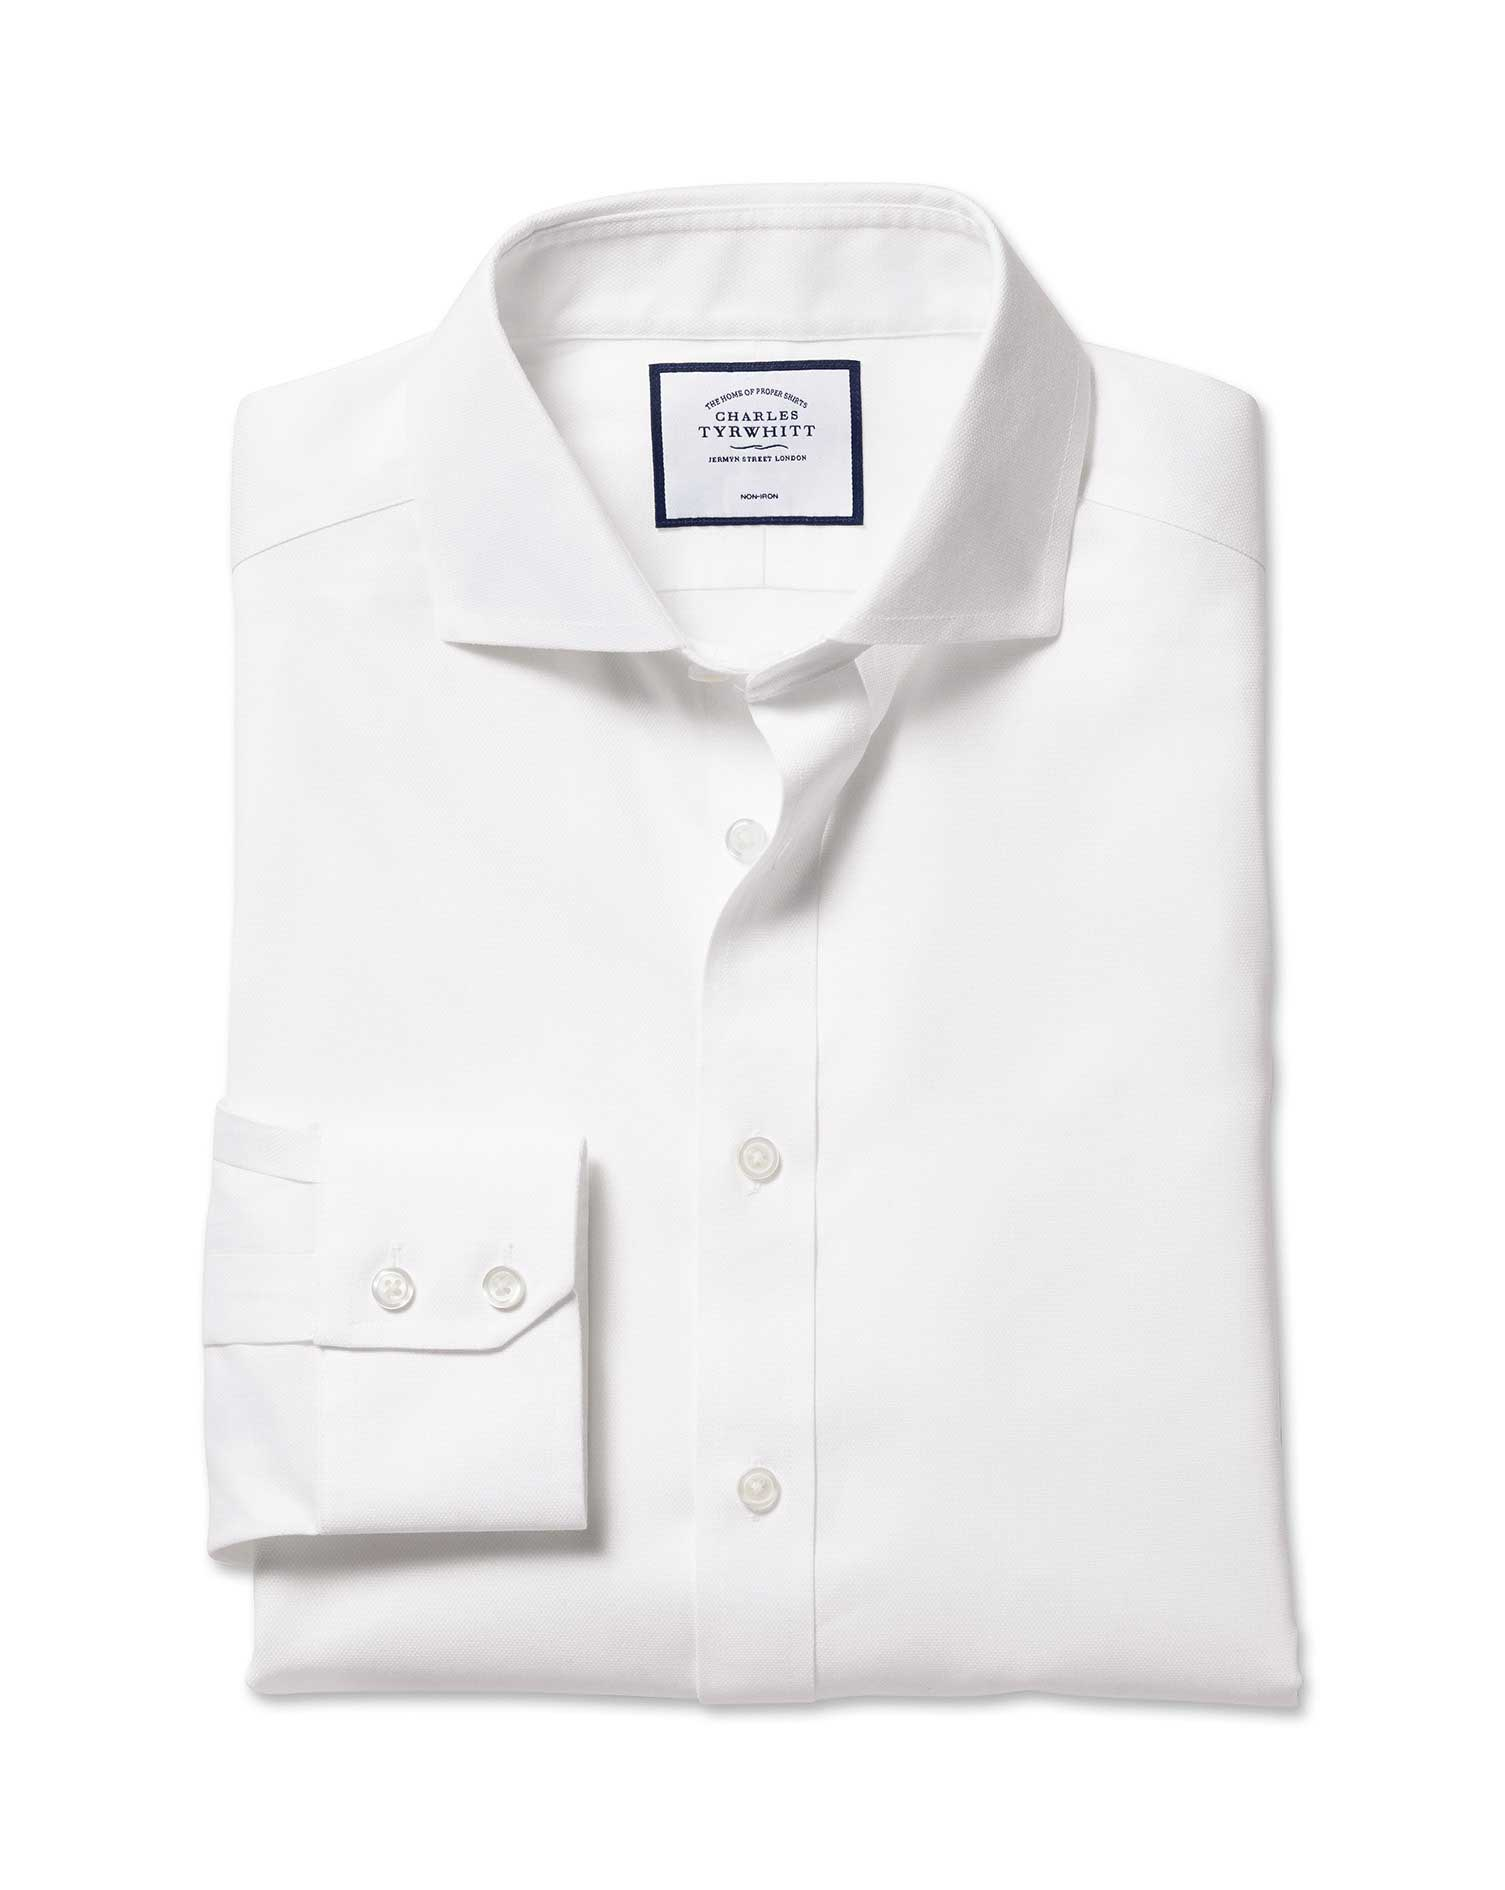 Slim Fit Cutaway Non-Iron Cotton Stretch Oxford White Formal Shirt Single Cuff Size 15.5/34 by Charl